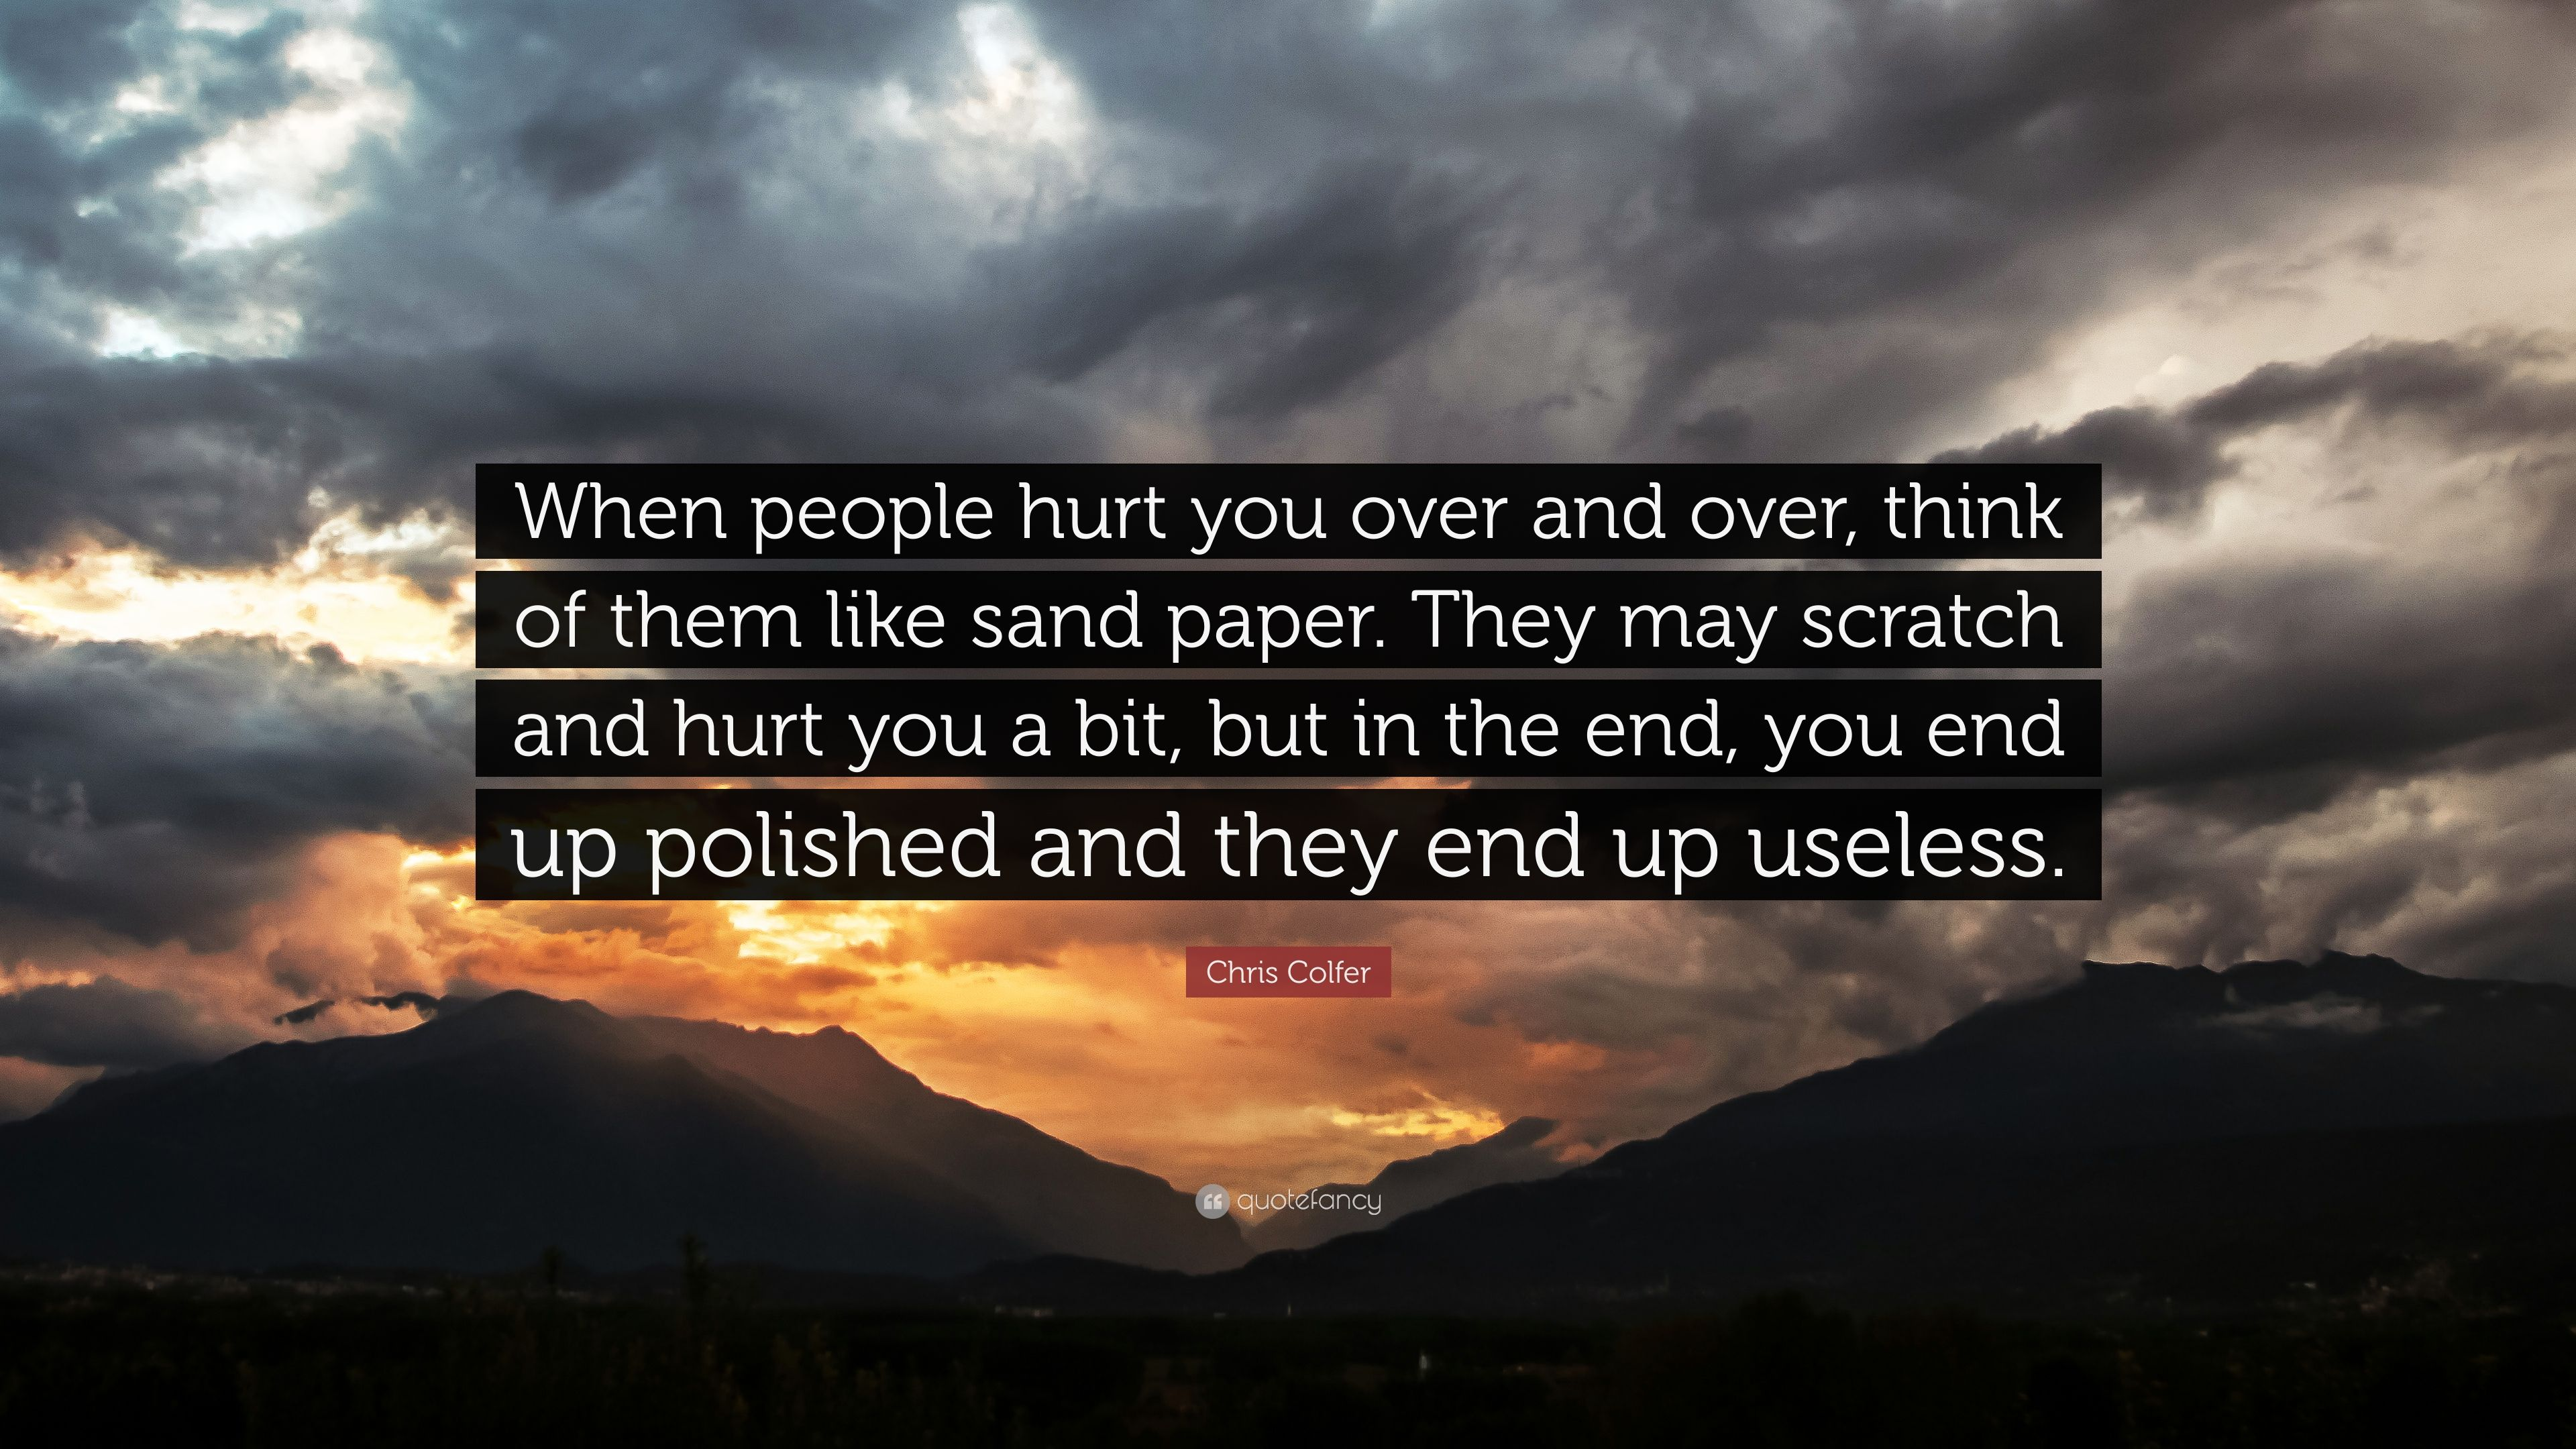 """Quotes About Someone Hurting You Over And Over: Chris Colfer Quote: """"When People Hurt You Over And Over"""